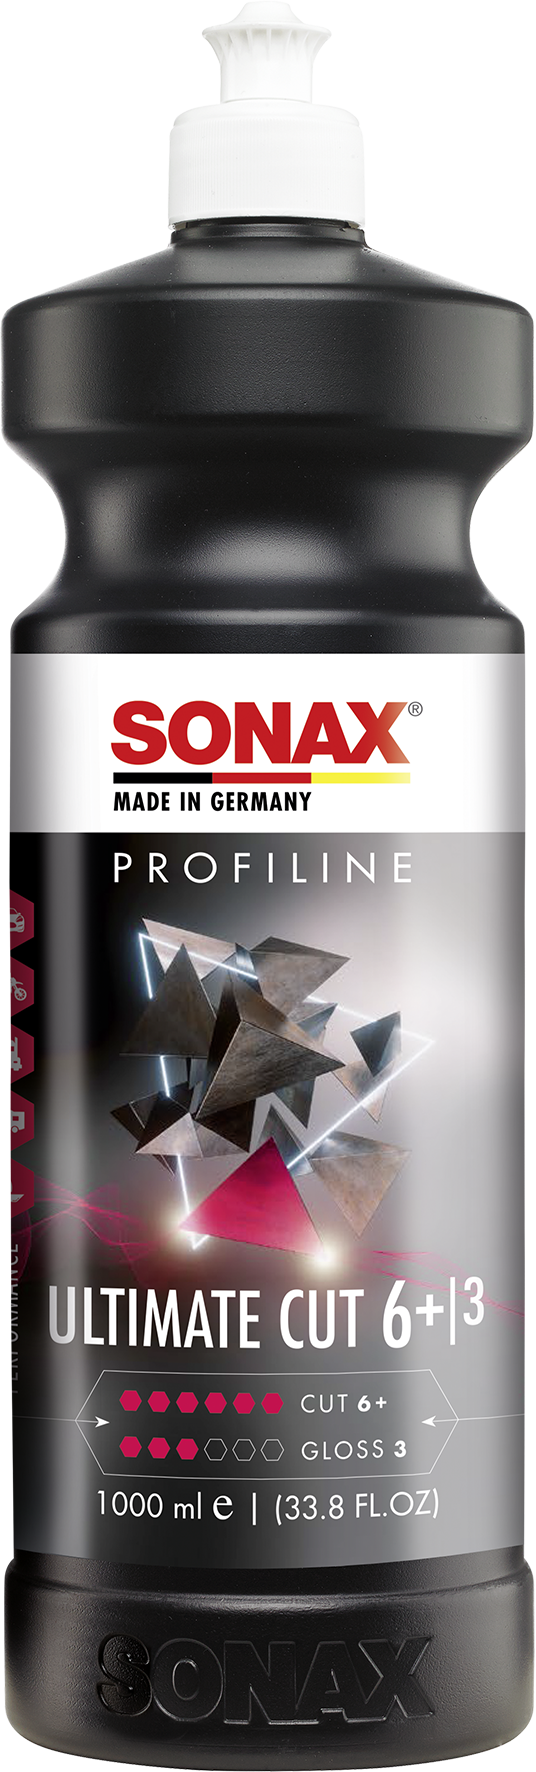 NEW SONAX PROFILINE Ultimate Cut 6+ | Available End Of November